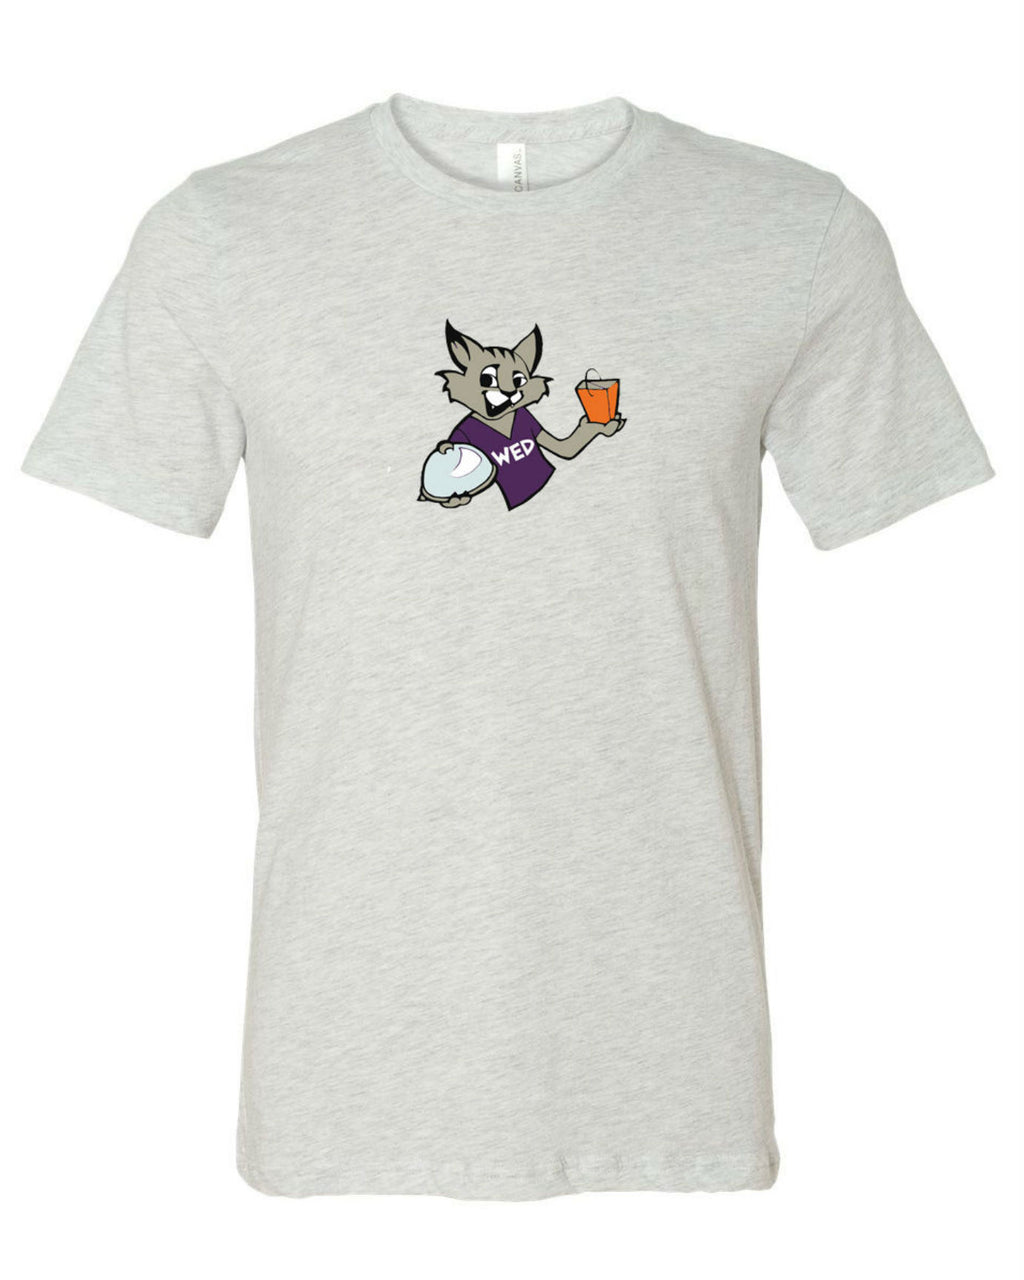 Wildcat Express Shirt